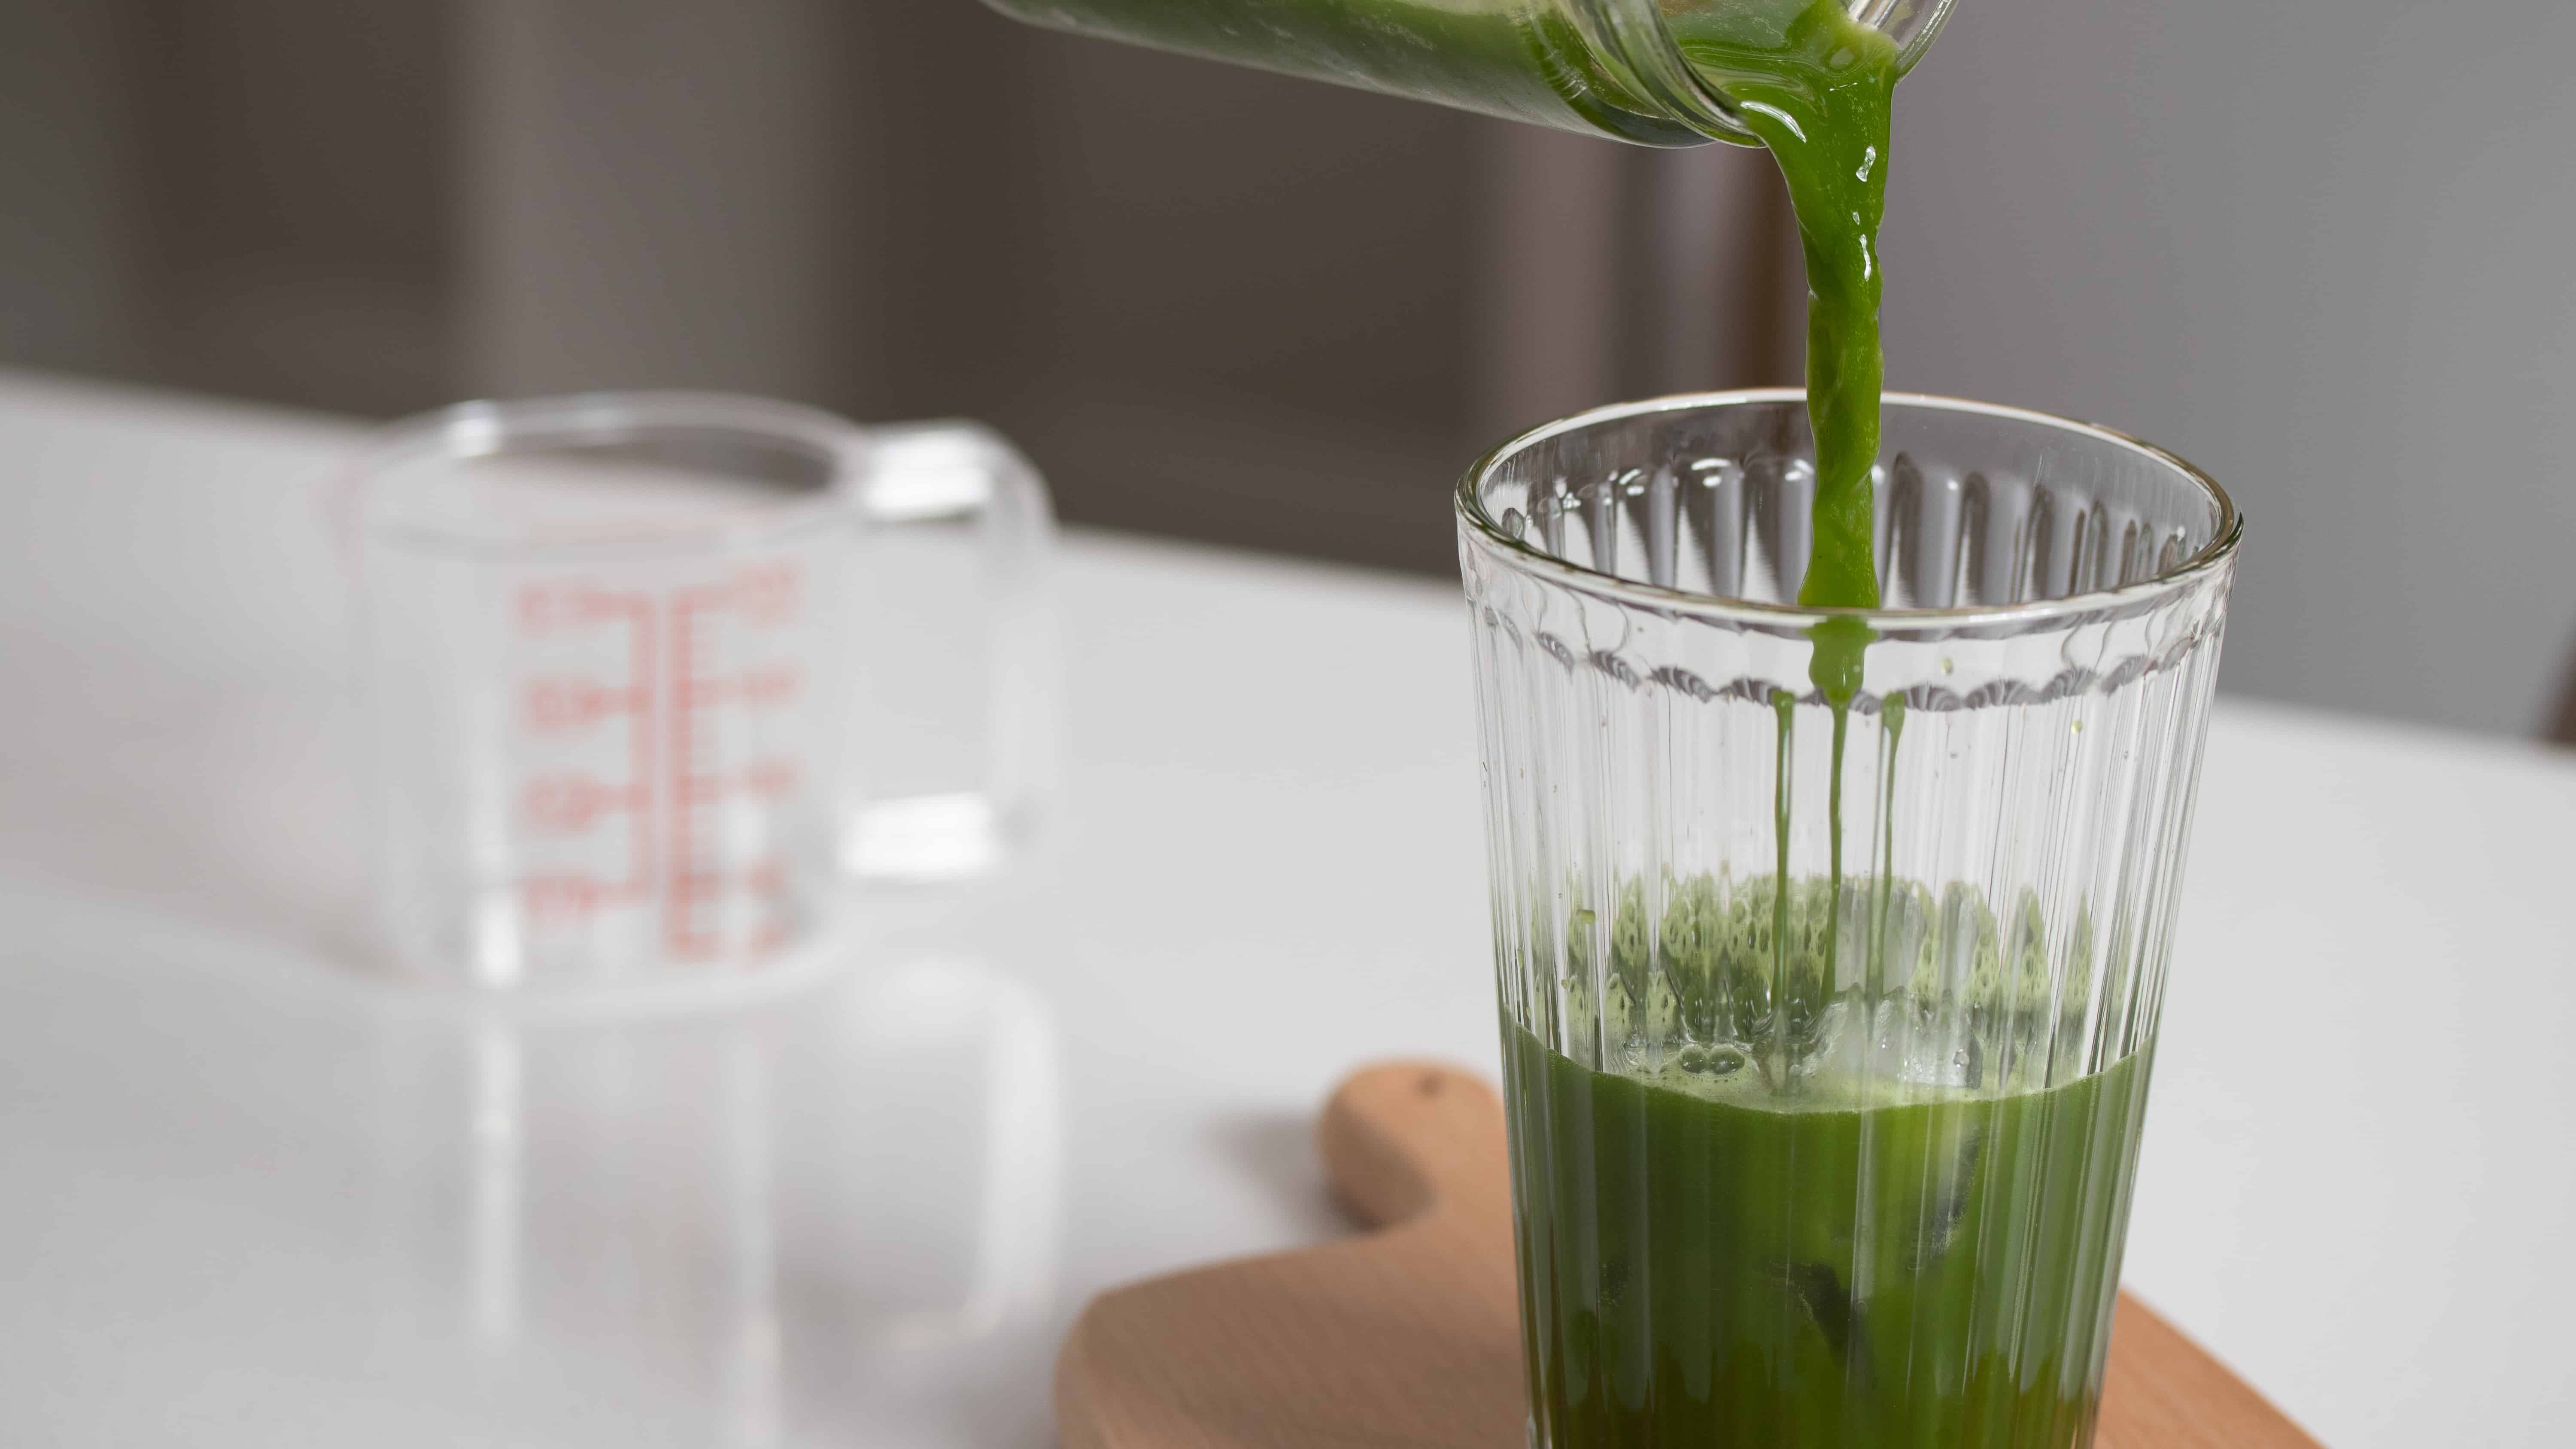 pouring matcha tea into a glass of iced for matcha float